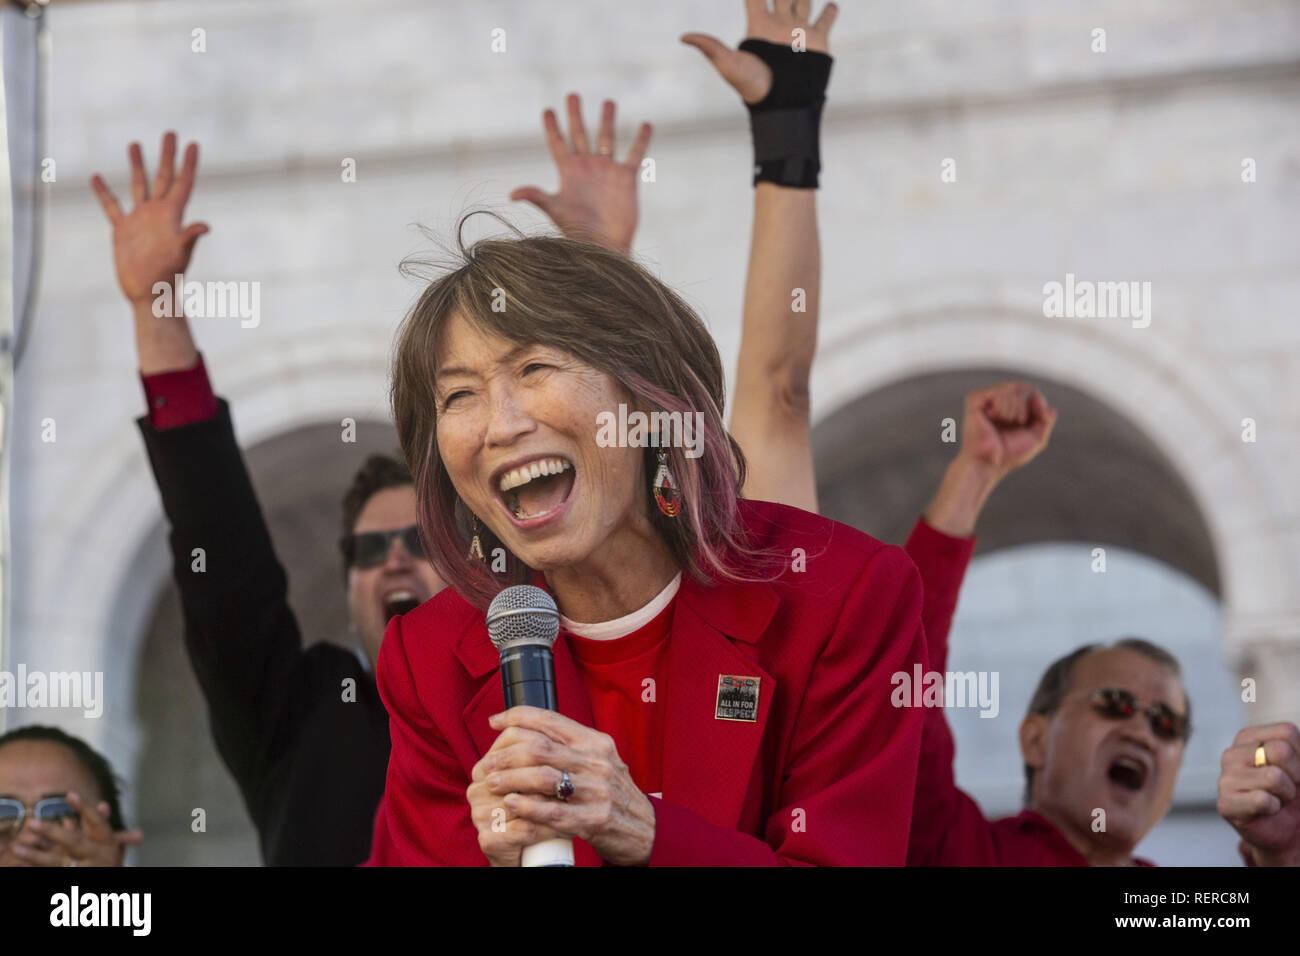 Los Angeles, California, USA. 22nd Jan, 2019. ARLENE INOUYE, Secretary at UTLA, speaks to the crowd at a downtown Los Angeles rally at city hall Tuesday, celebrating the announcement of an agreement to end the LAUSD teachers strike at a downtown LA rally at city hall. Credit: Allison Zaucha/ZUMA Wire/Alamy Live News - Stock Image